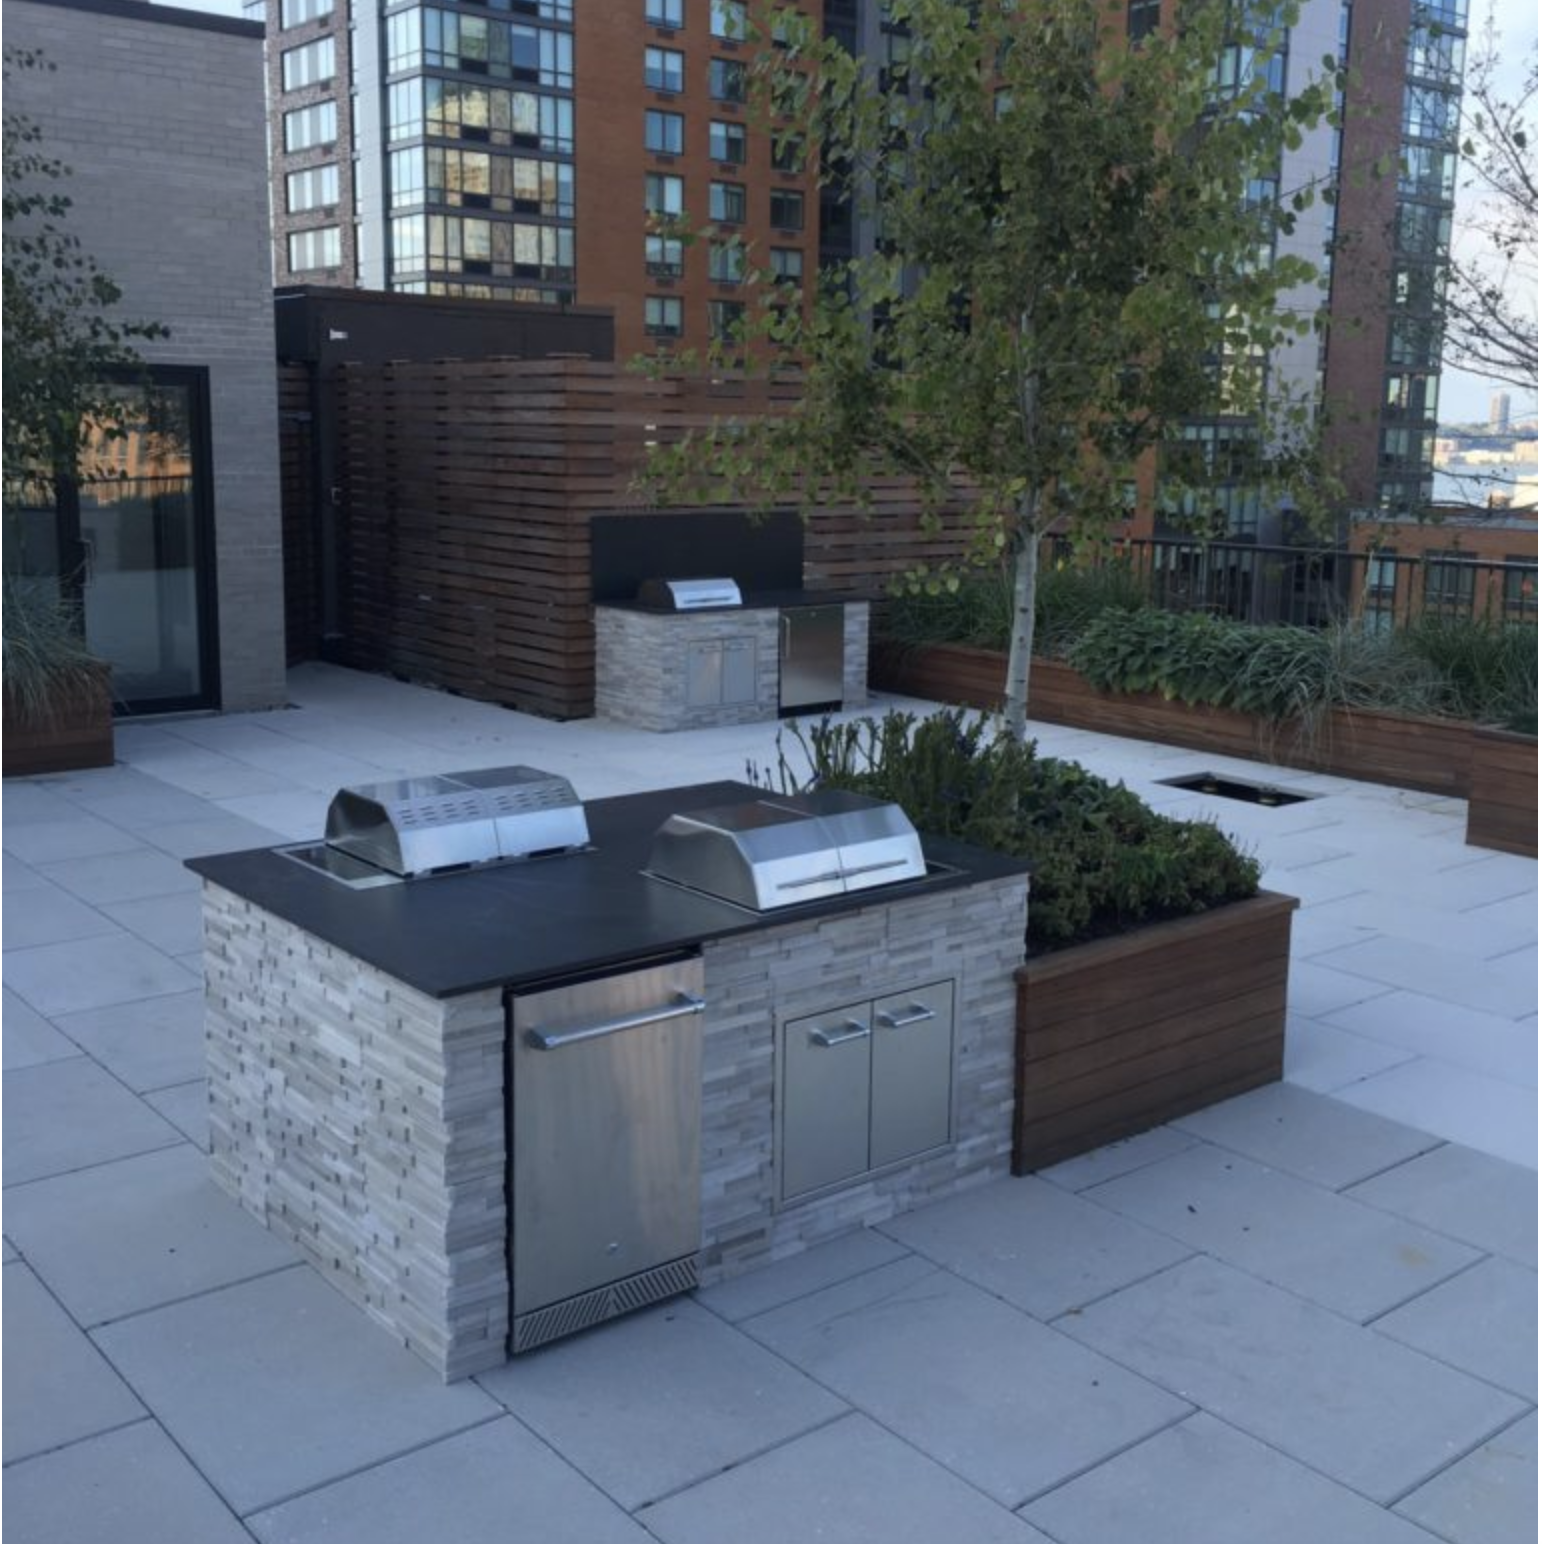 Kenyon electric indoor/outdoor electric grills  are the perfect urban rooftop solution.